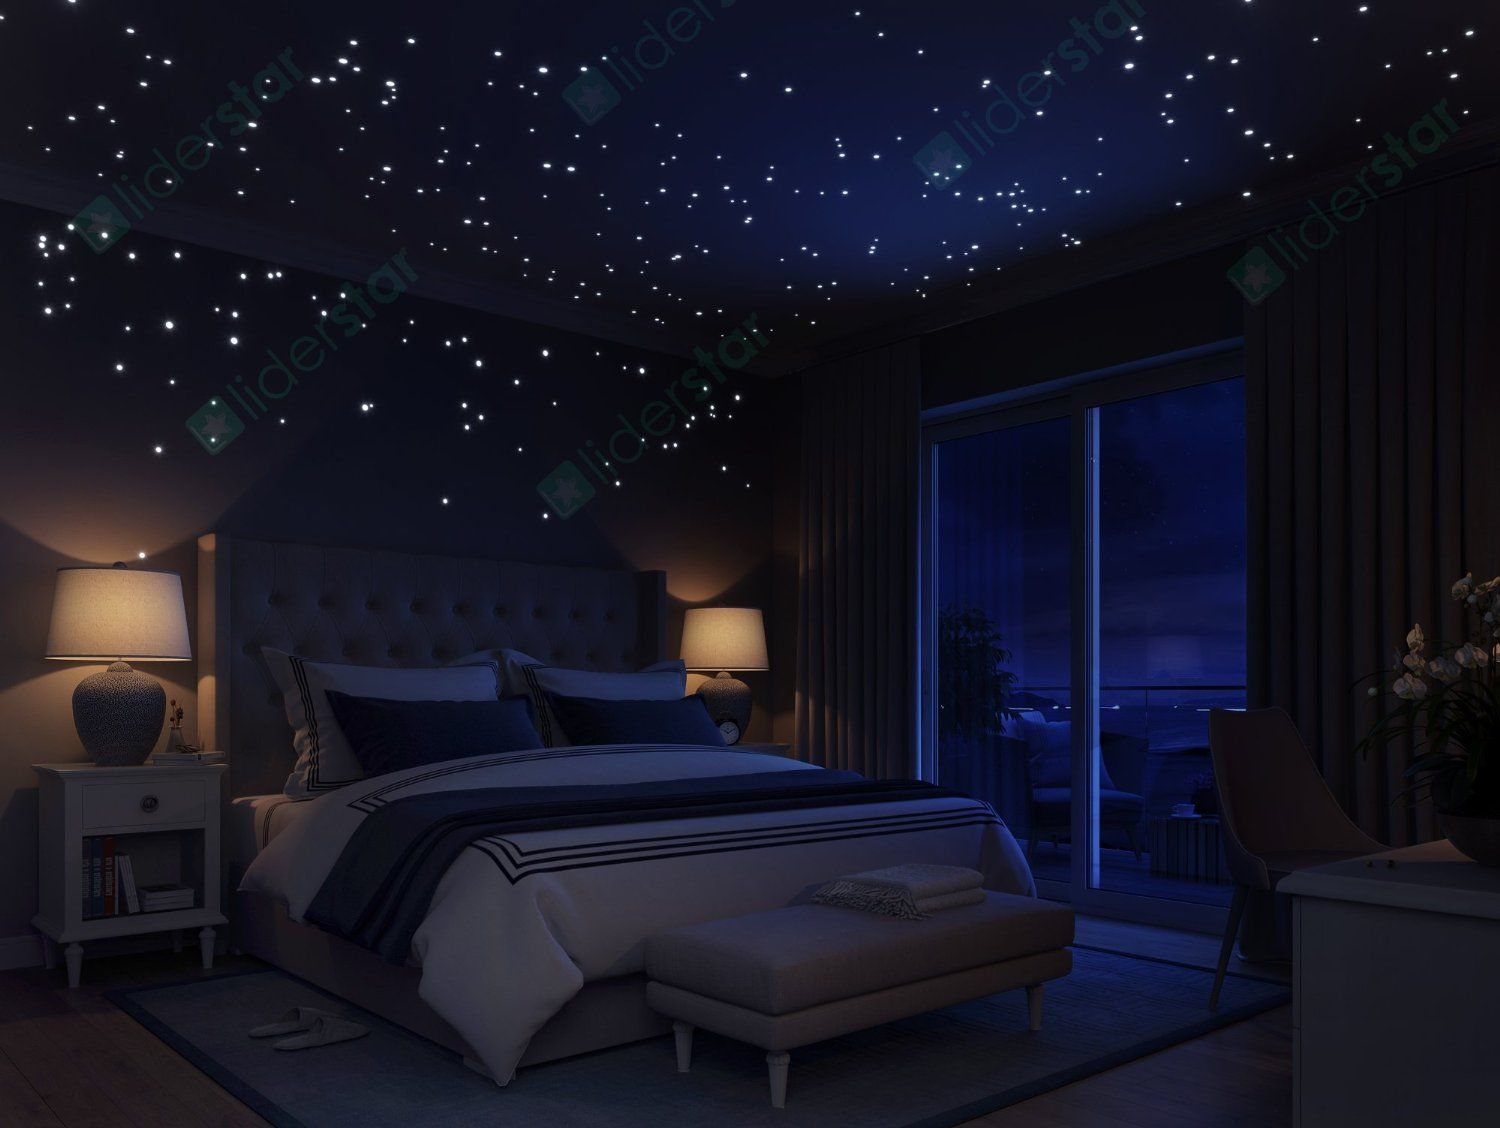 Glow In The Dark Stars Wall Stickers, 252 Dots and Moon